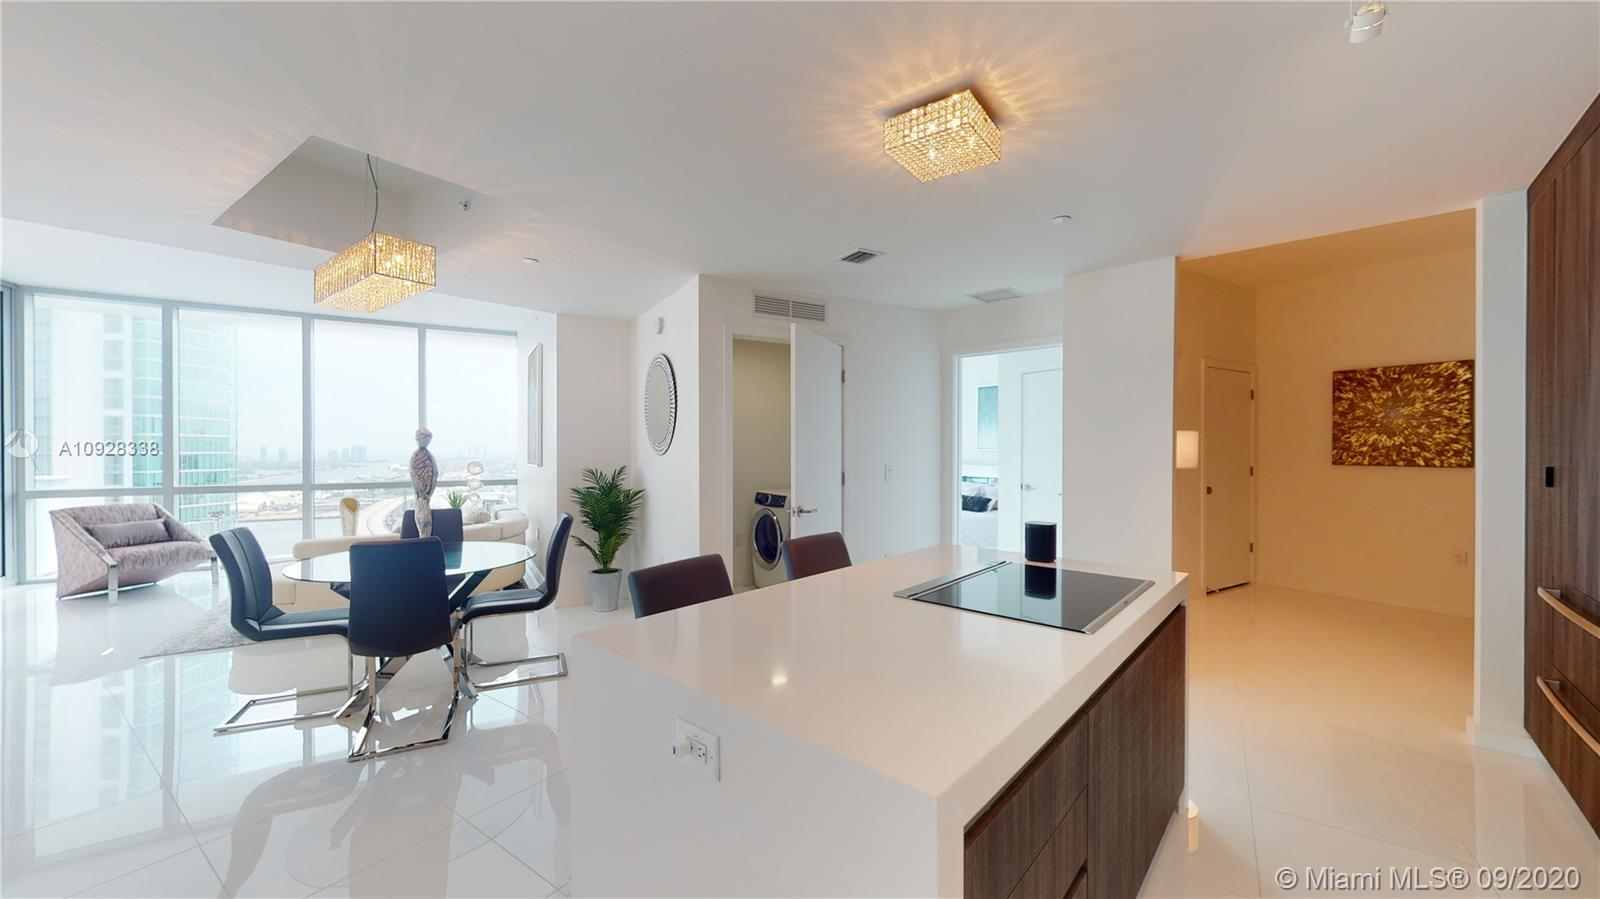 Experience the stunning views from this professionally furnished and decorated 1753 SQ FT Residence